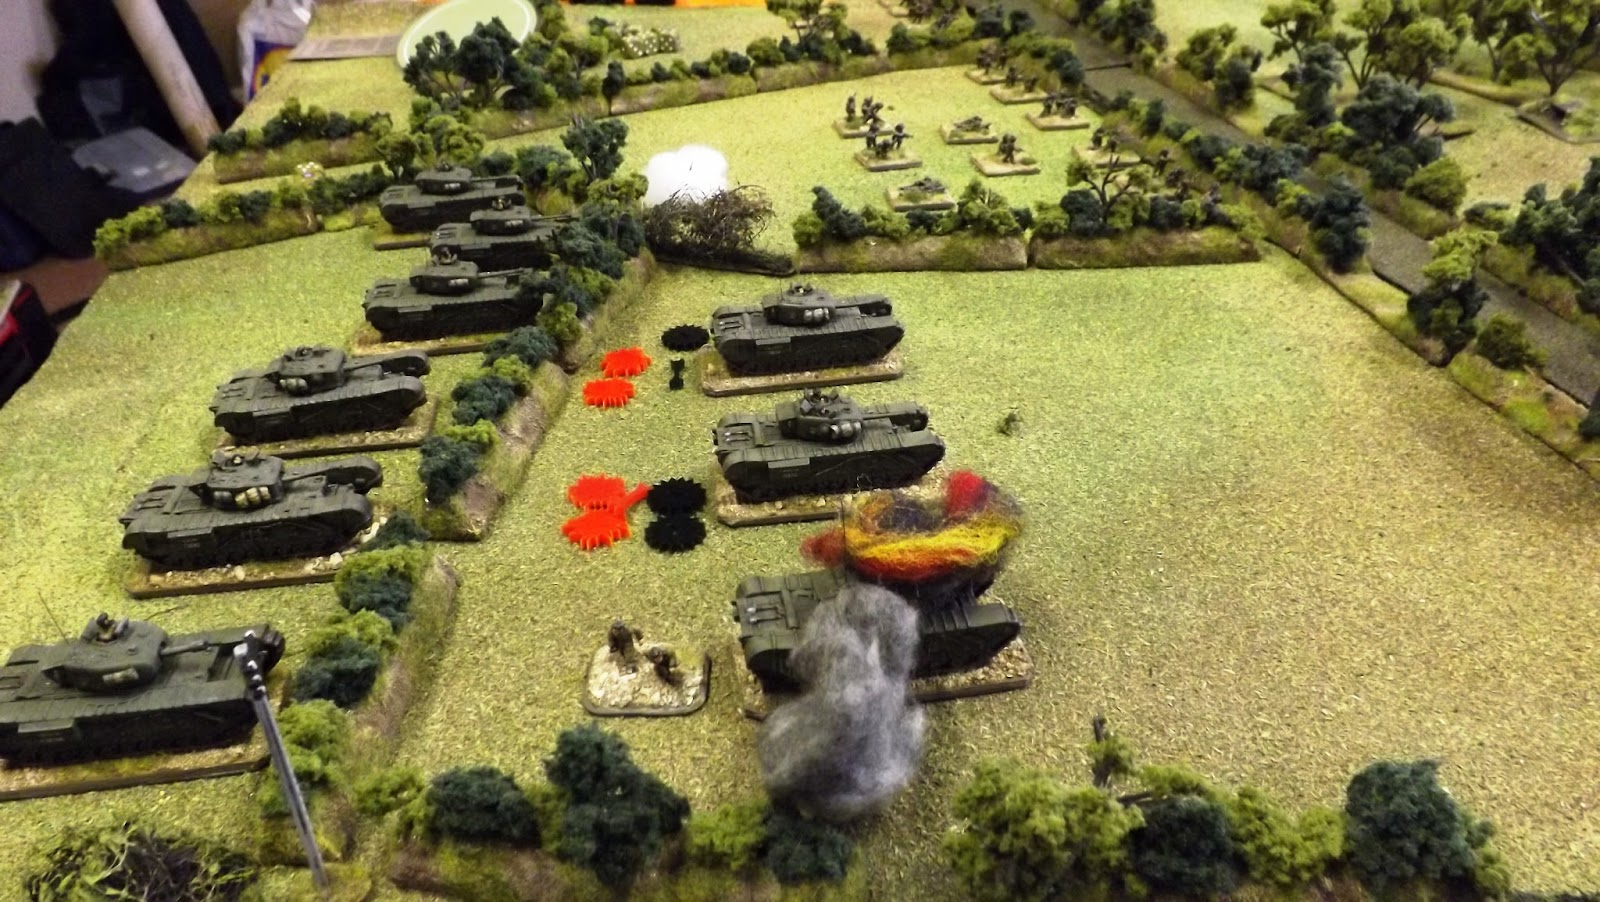 The lead British tanks take casualties, shock and damage as the Guards infantry sprint to the sunken lane